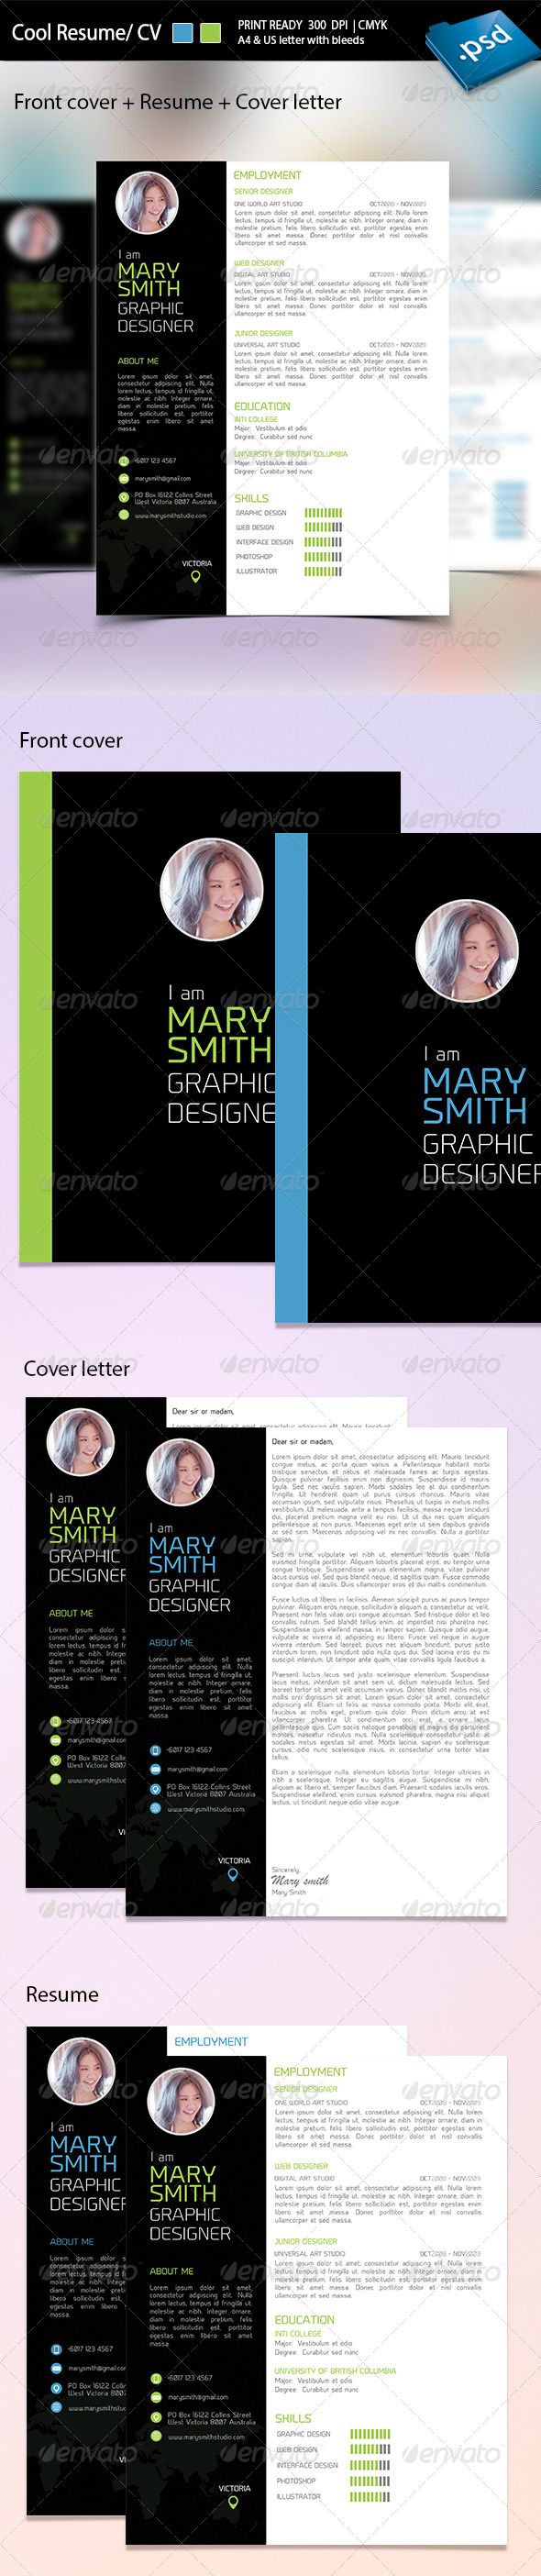 Best 25 Cv Cover Letter Ideas On Pinterest Creative Cv Design